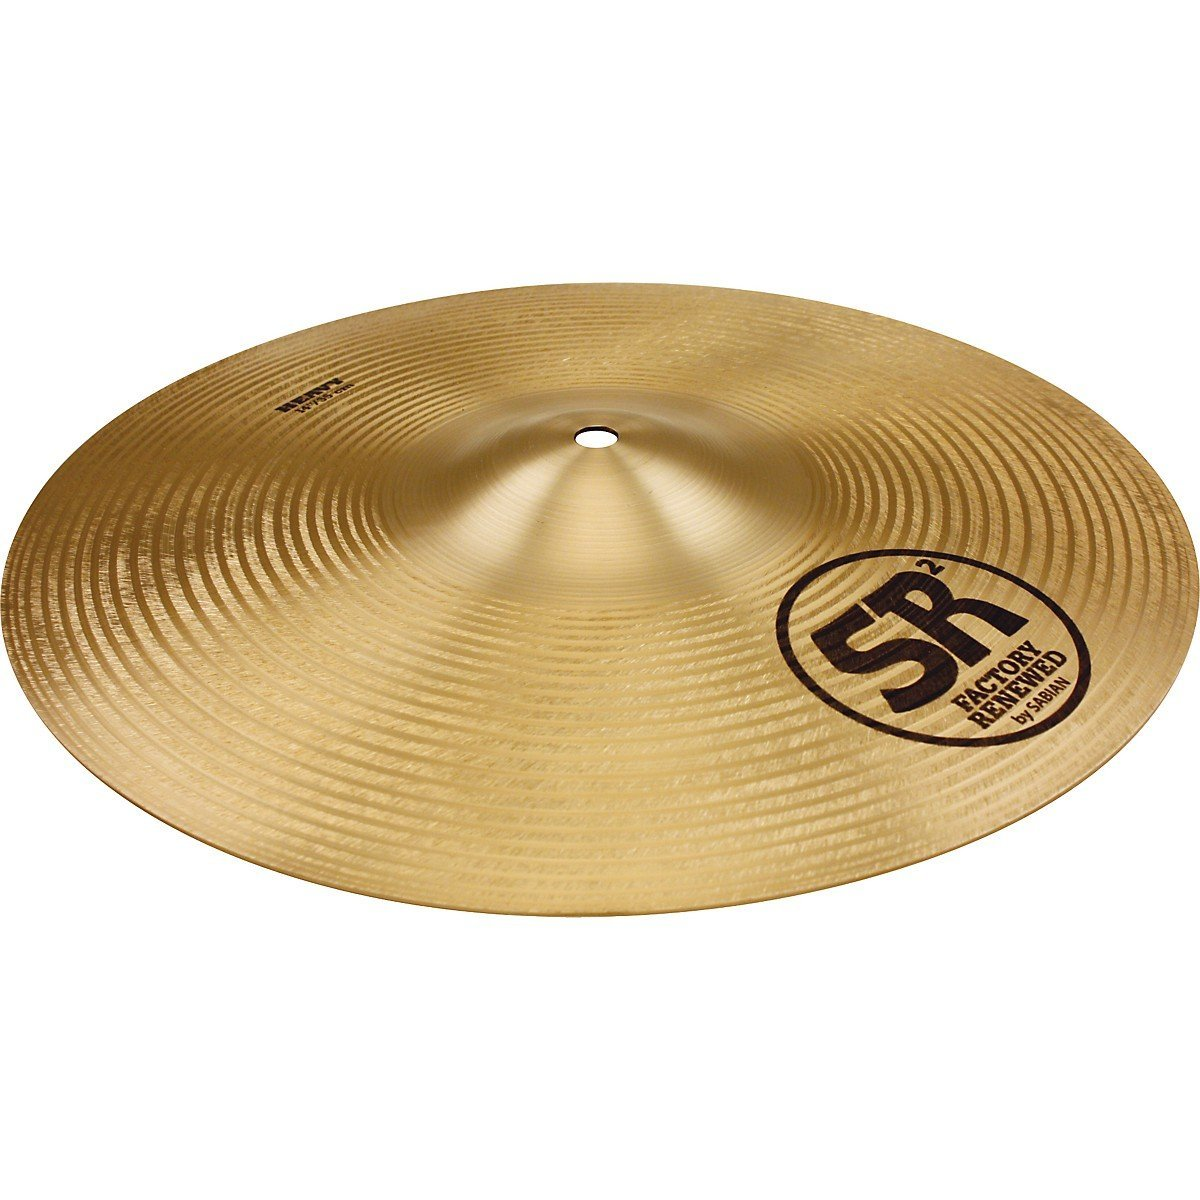 Sabian SR2 Thin Splash Cymbal 10 in.